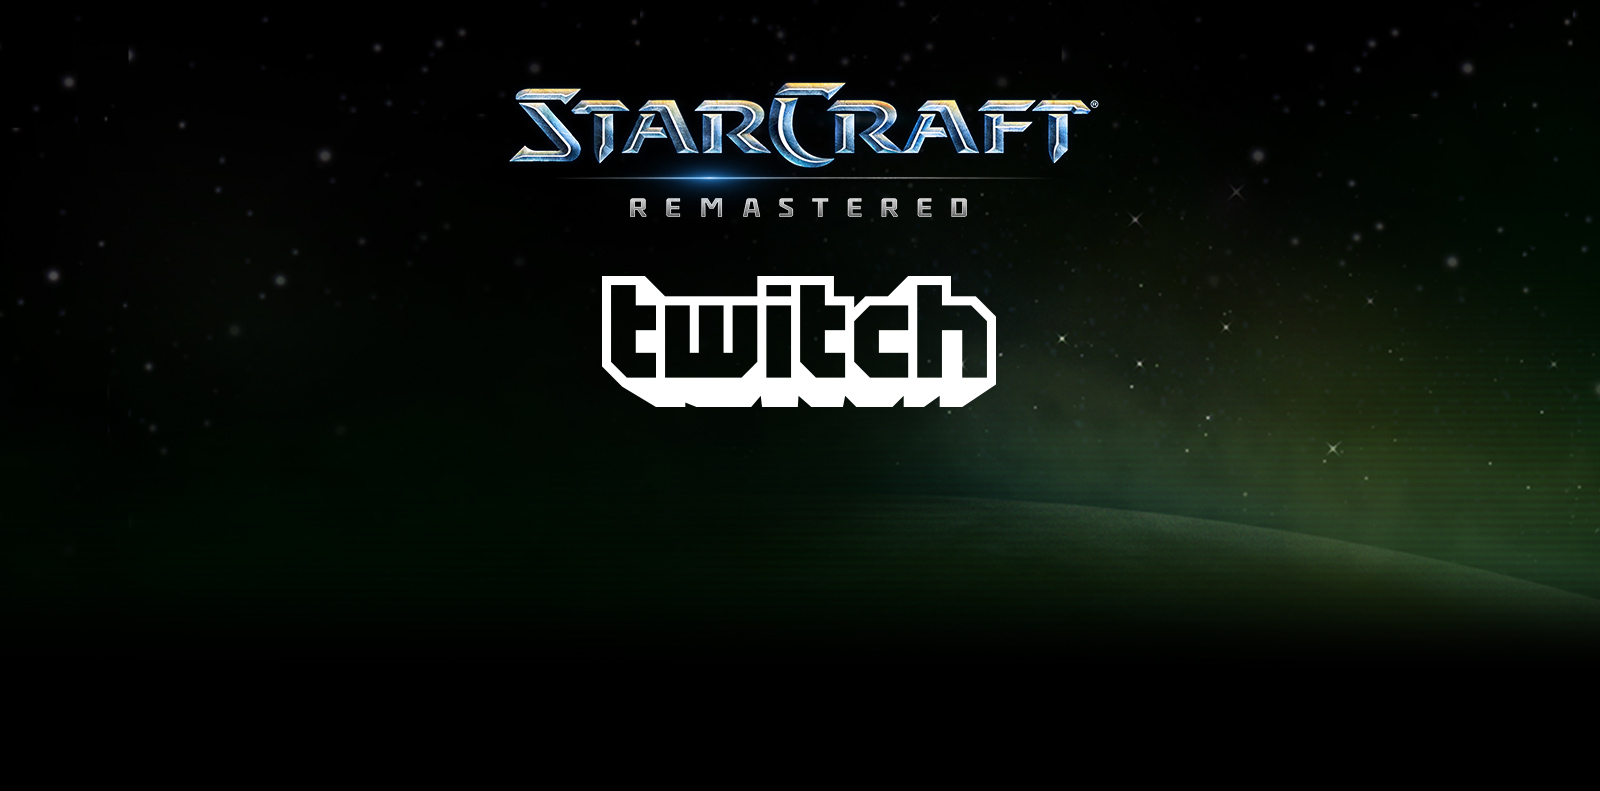 Stream de lanzamiento de StarCraft: Remastered